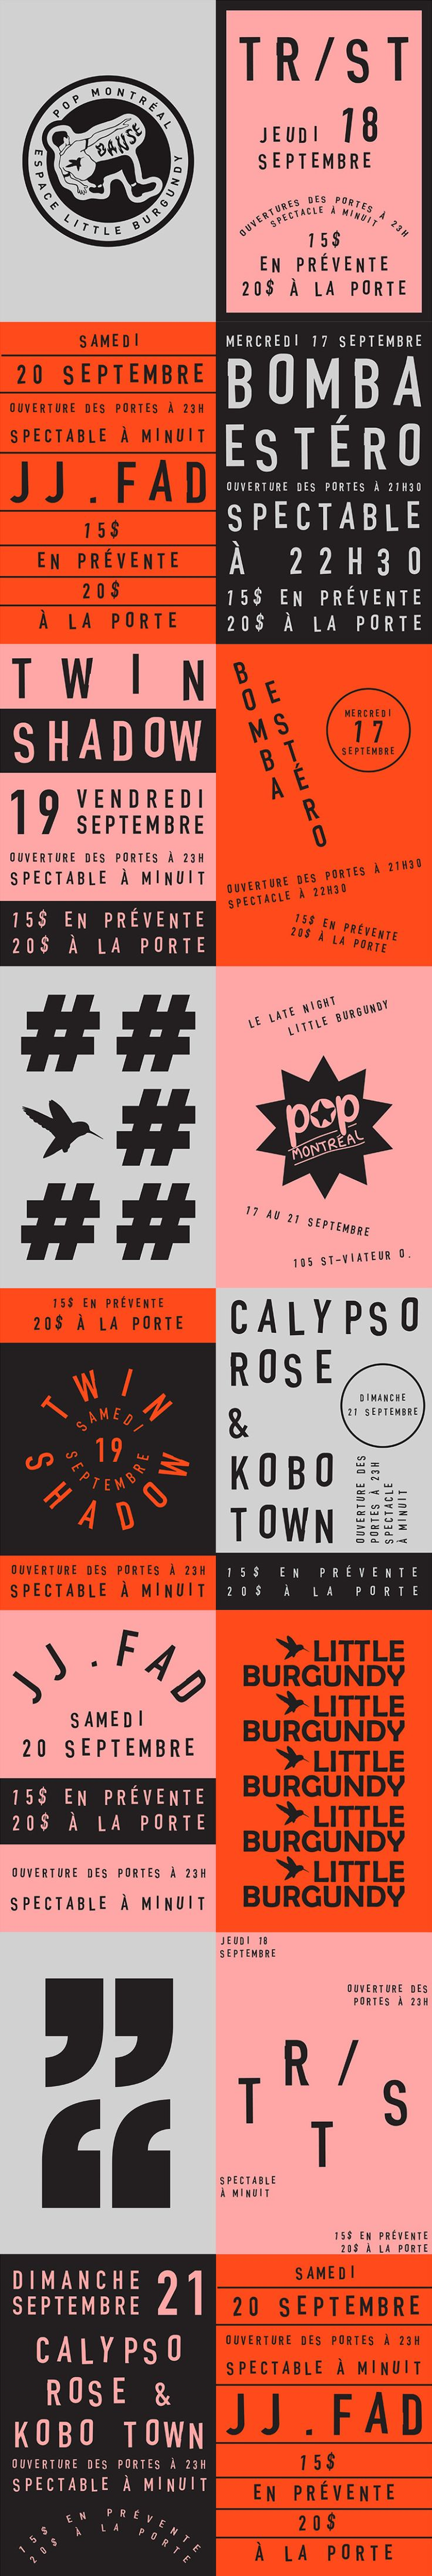 Poster design layout - Best 25 Poster Designs Ideas That You Will Like On Pinterest Graphic Design Posters Poster Design Inspiration And Creative Posters